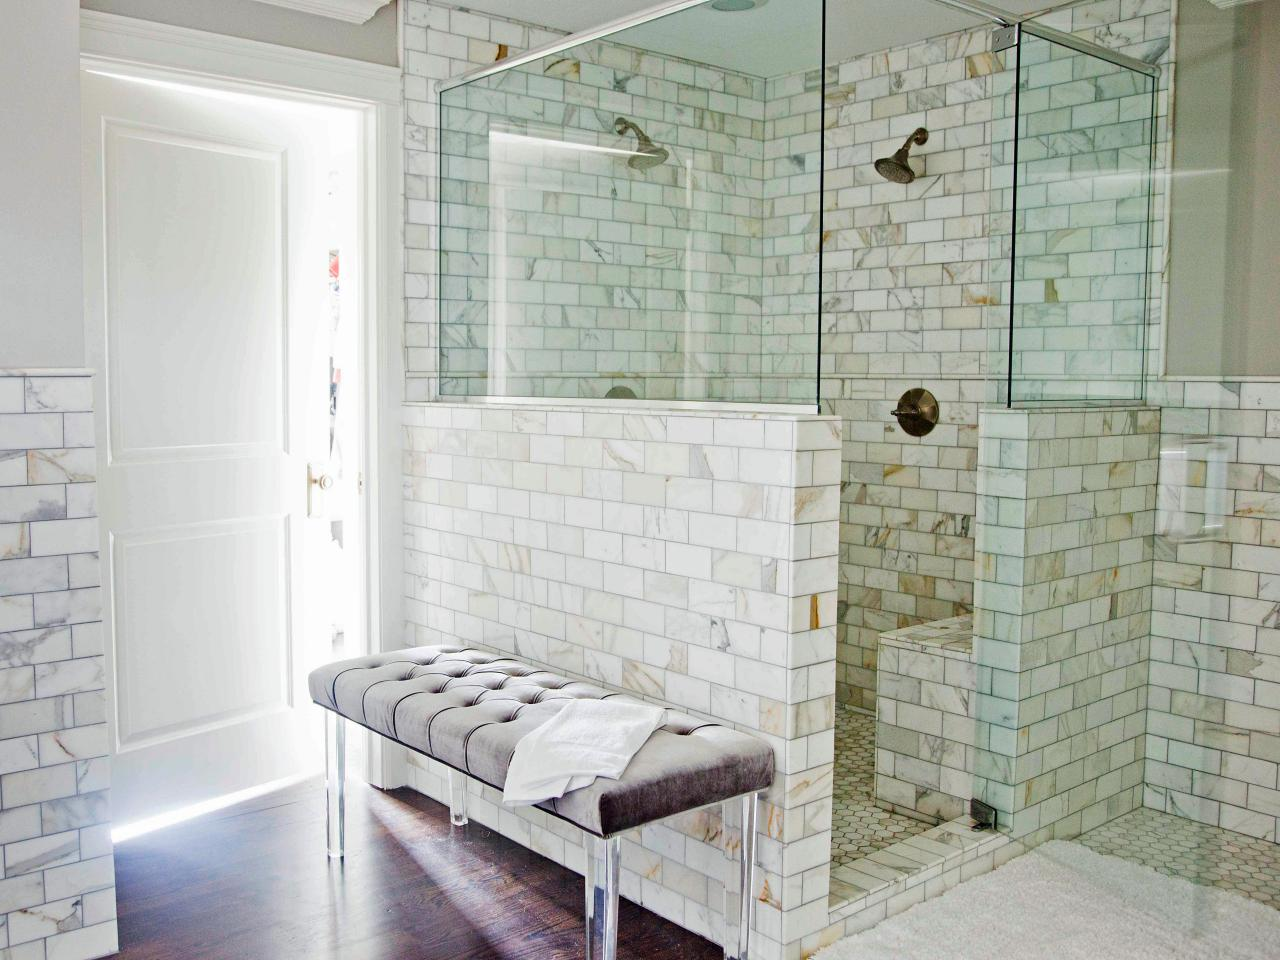 Bathroom shower ideas on a budget - 30 Shower Tile Ideas On A Budget